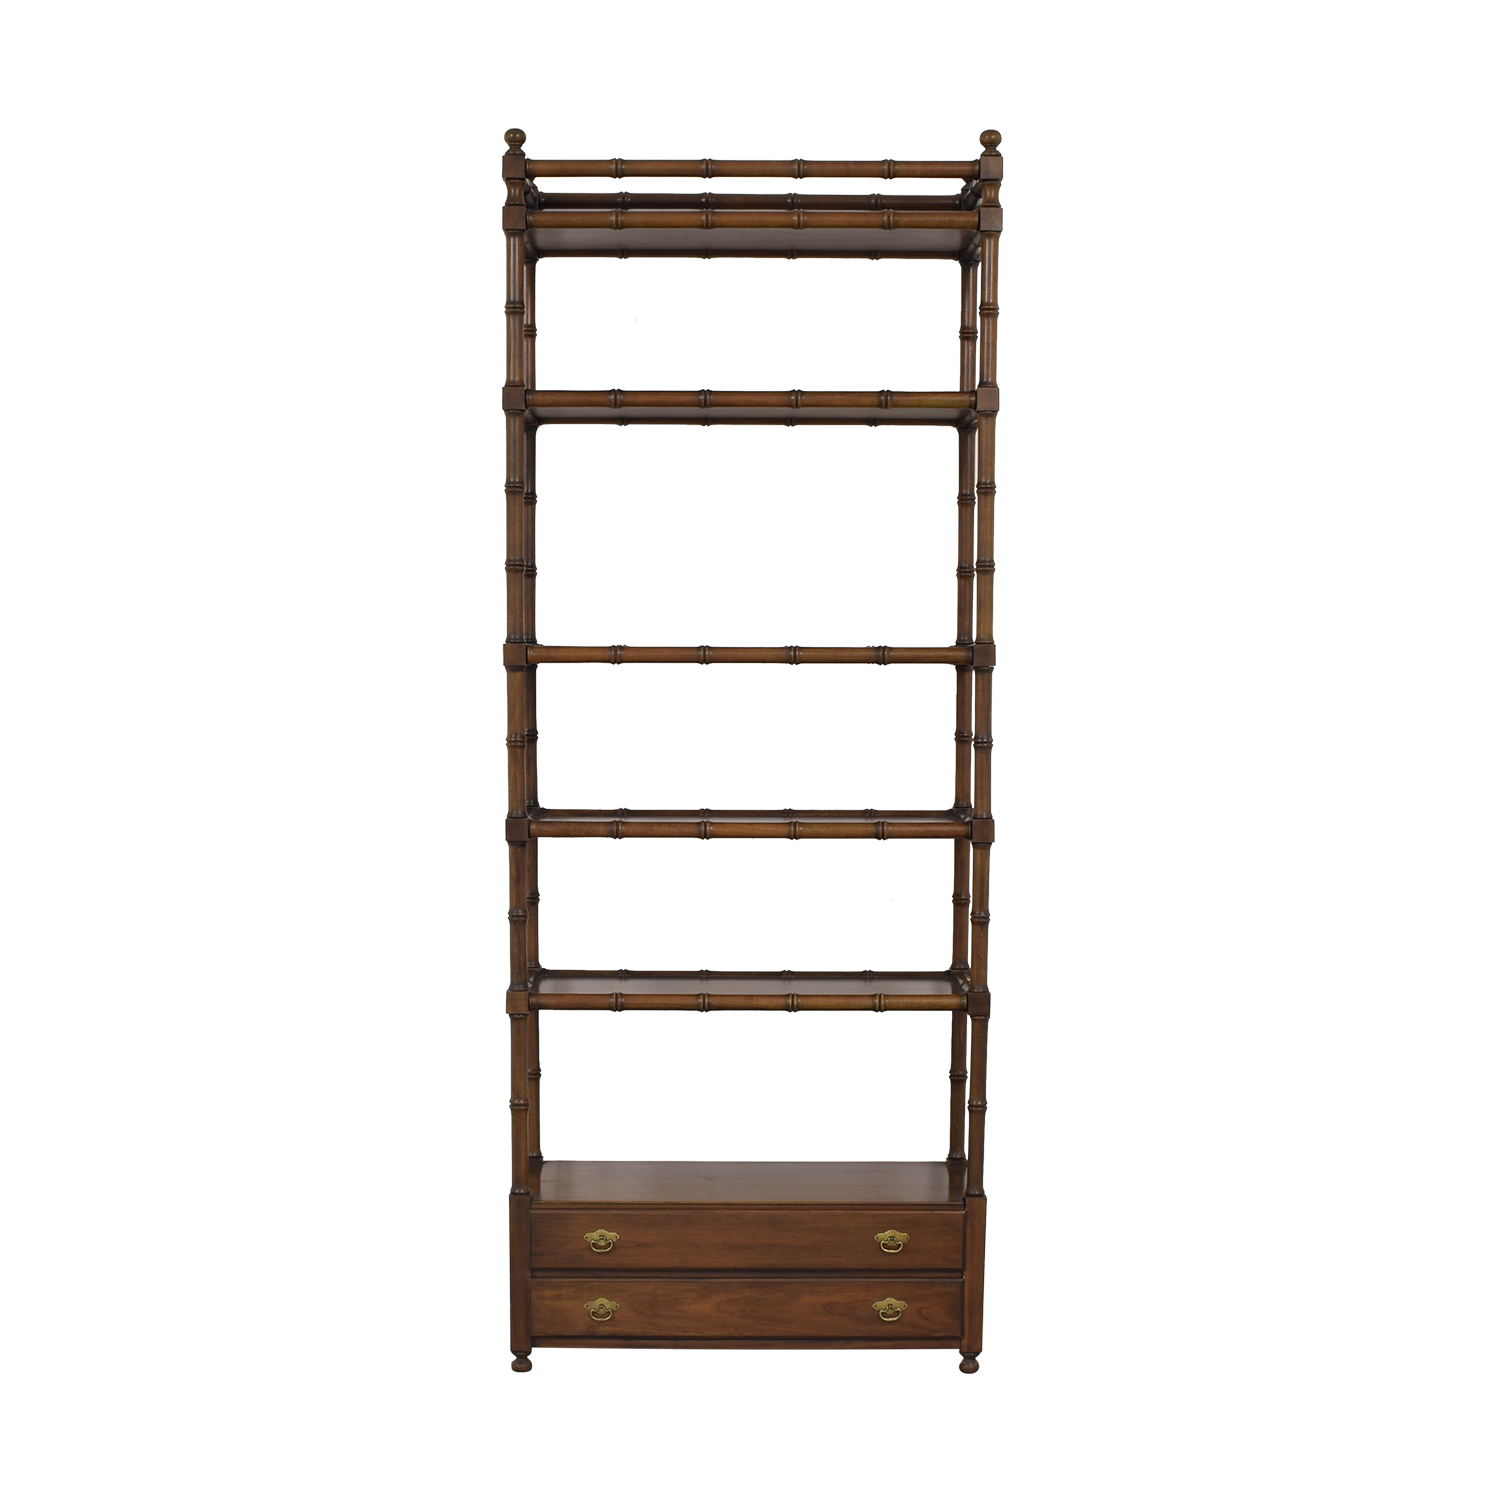 buy Pennsylvania House Pennsylvania House Bookshelf with Drawers online